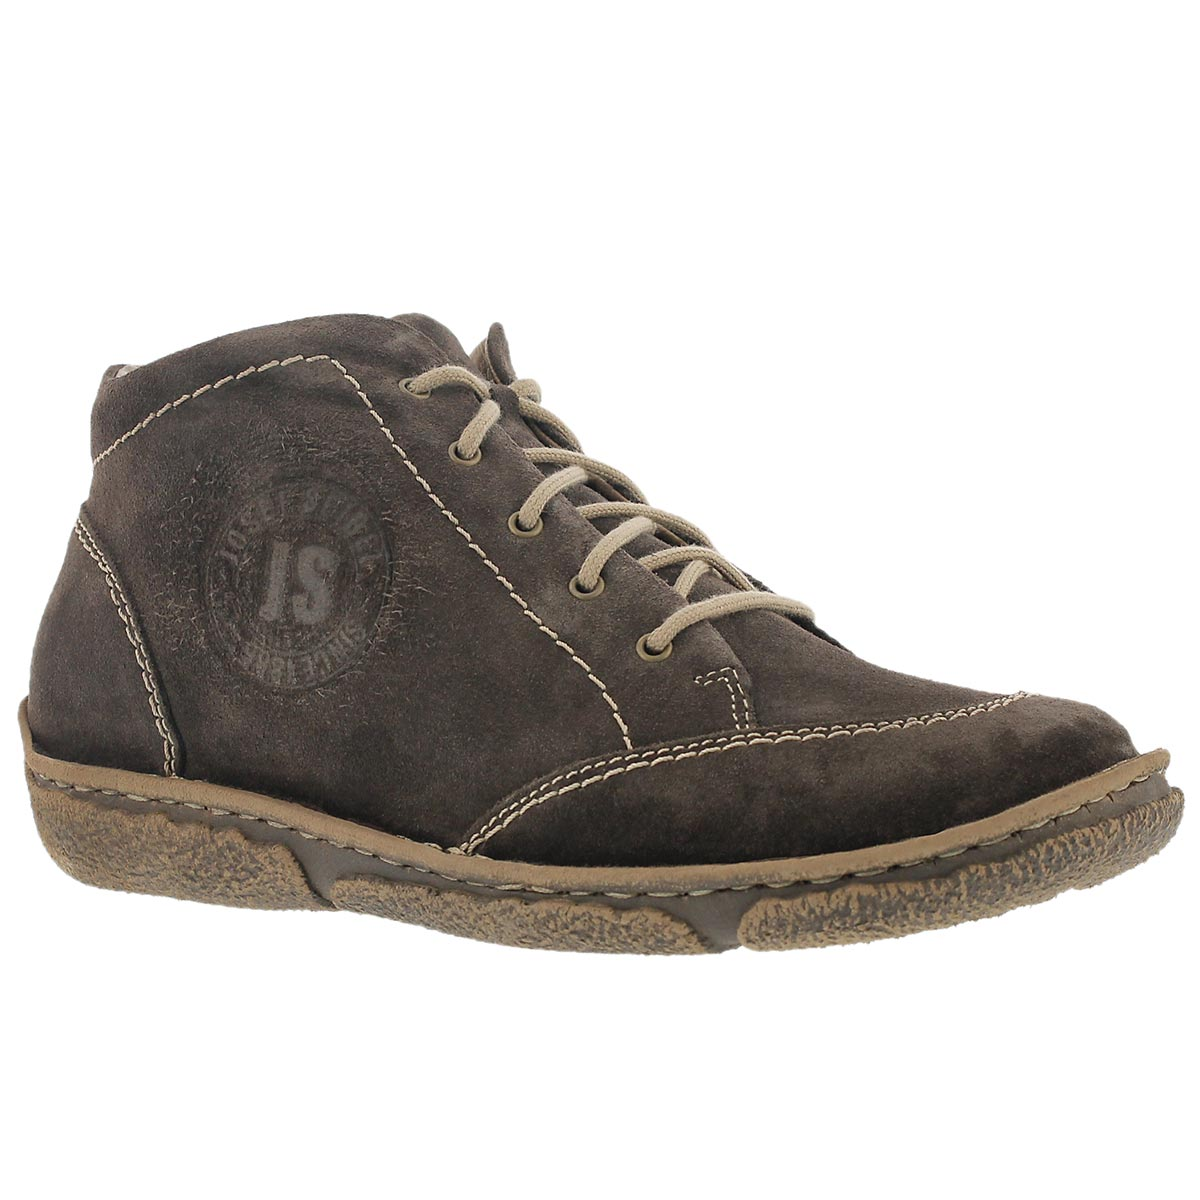 Lds Neele01 vulcano suede ankle boot